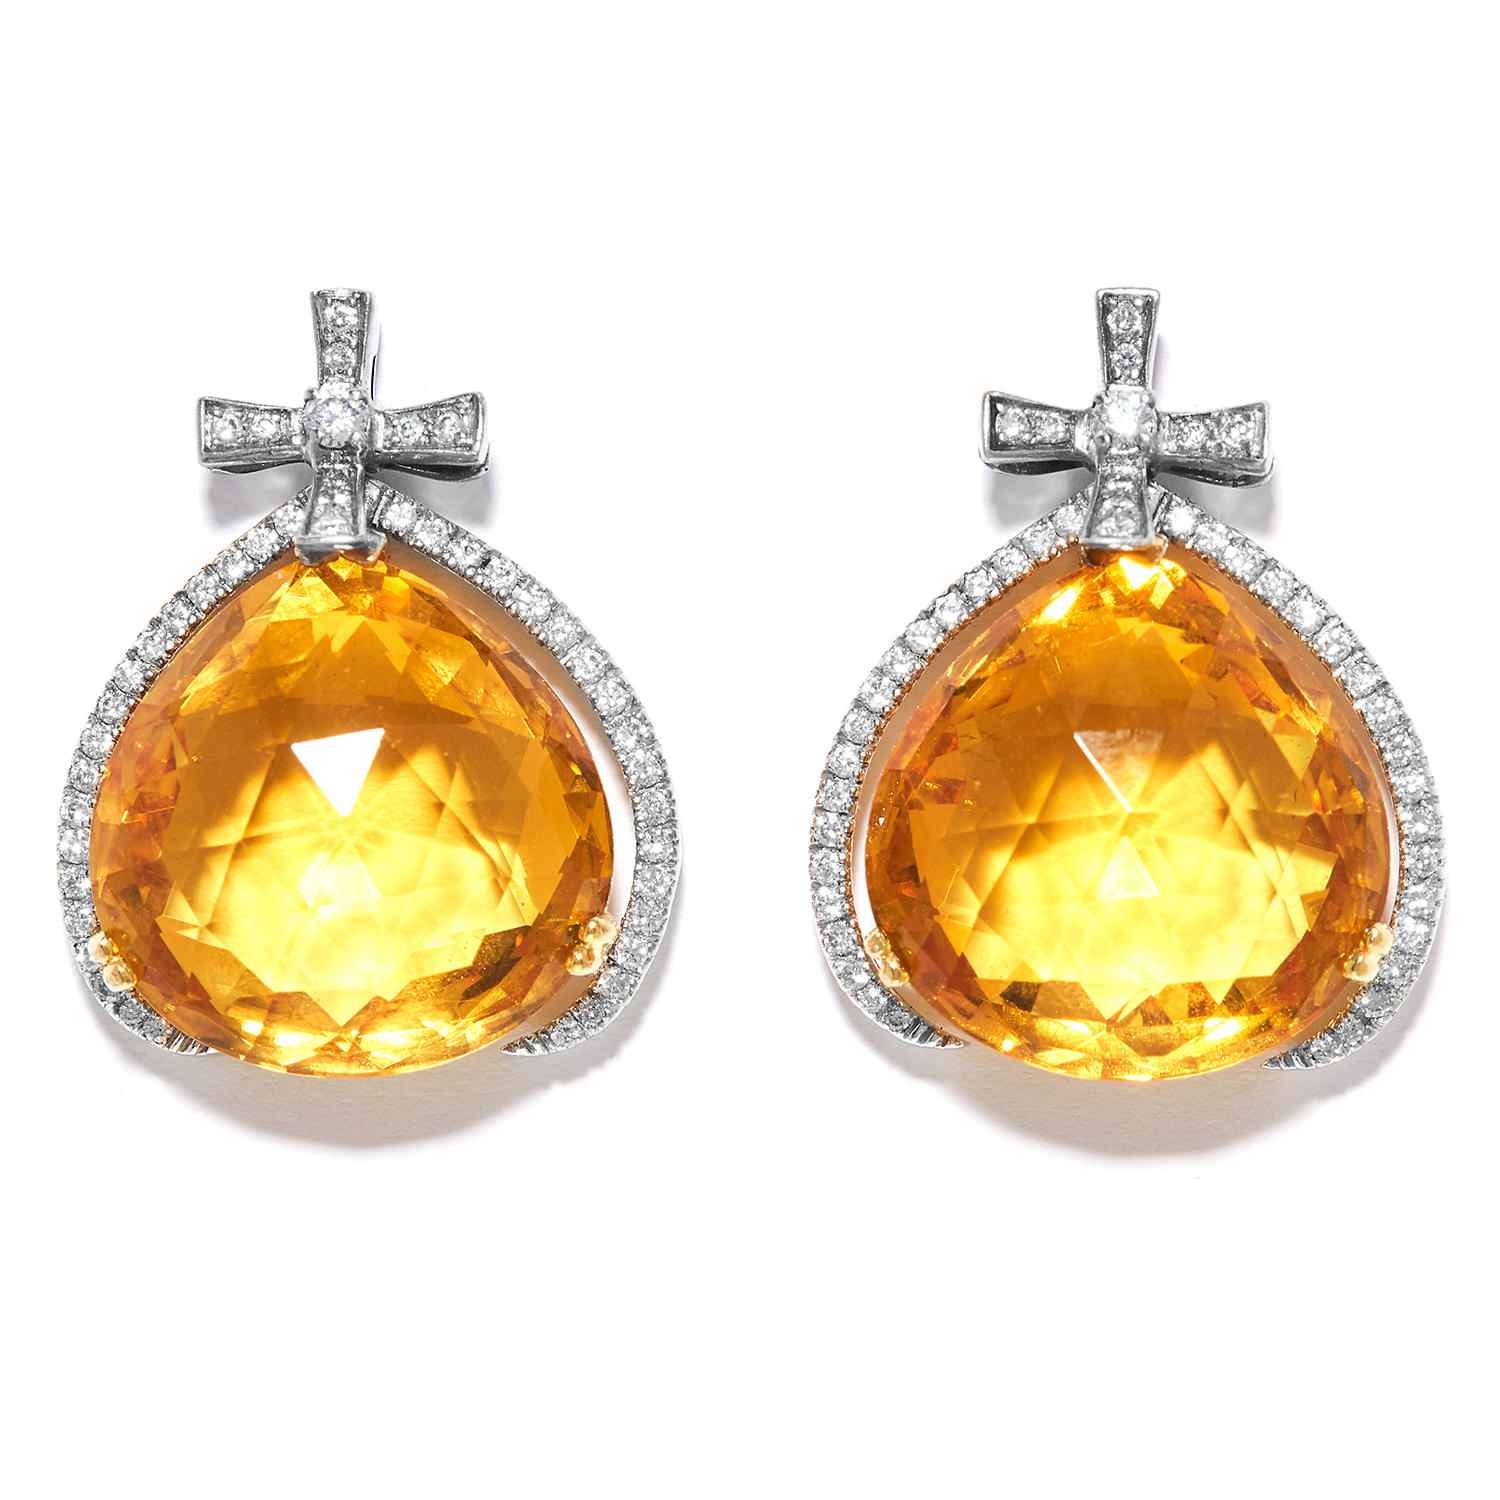 CITRINE AND DIAMOND EARRINGS in 18ct white and yellow gold, the pear shaped citrines suspended